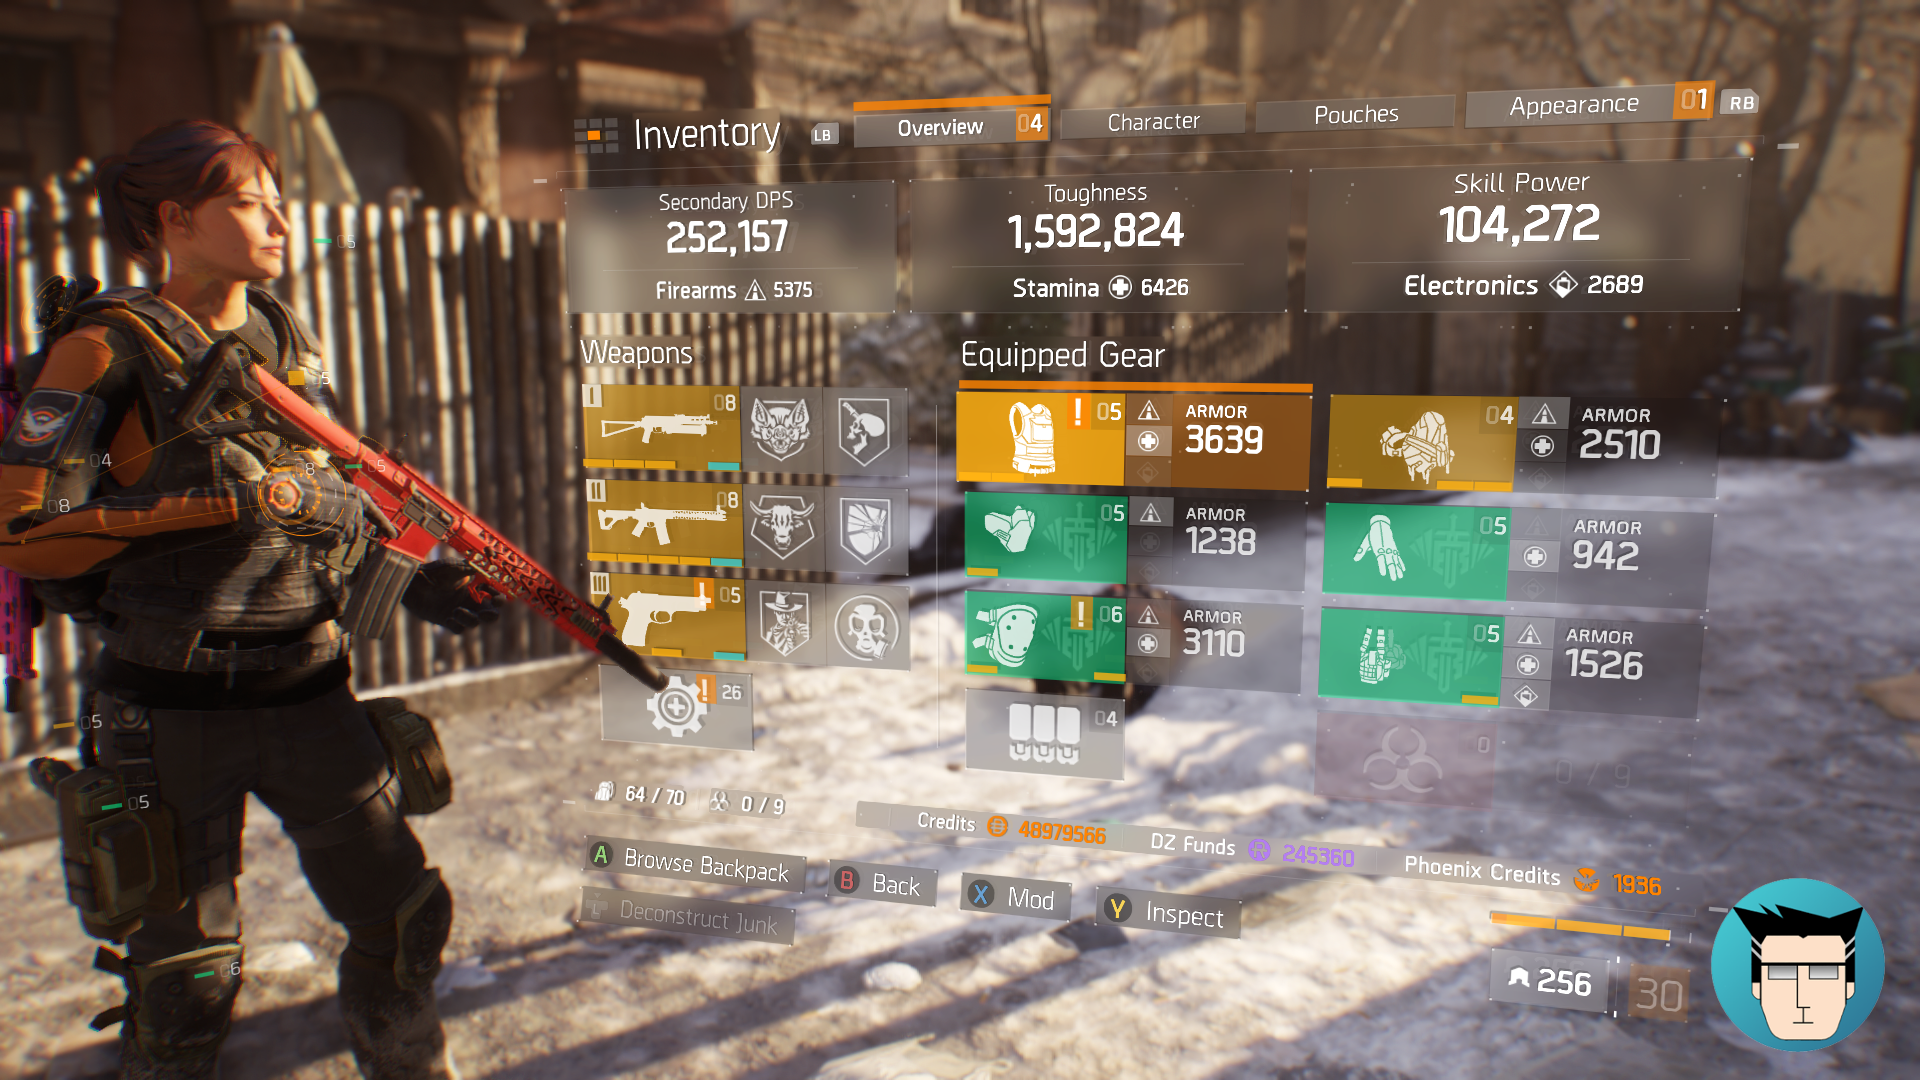 Overview | 1.59m Toughness, 2 skills on cooldown and buffed with critical save